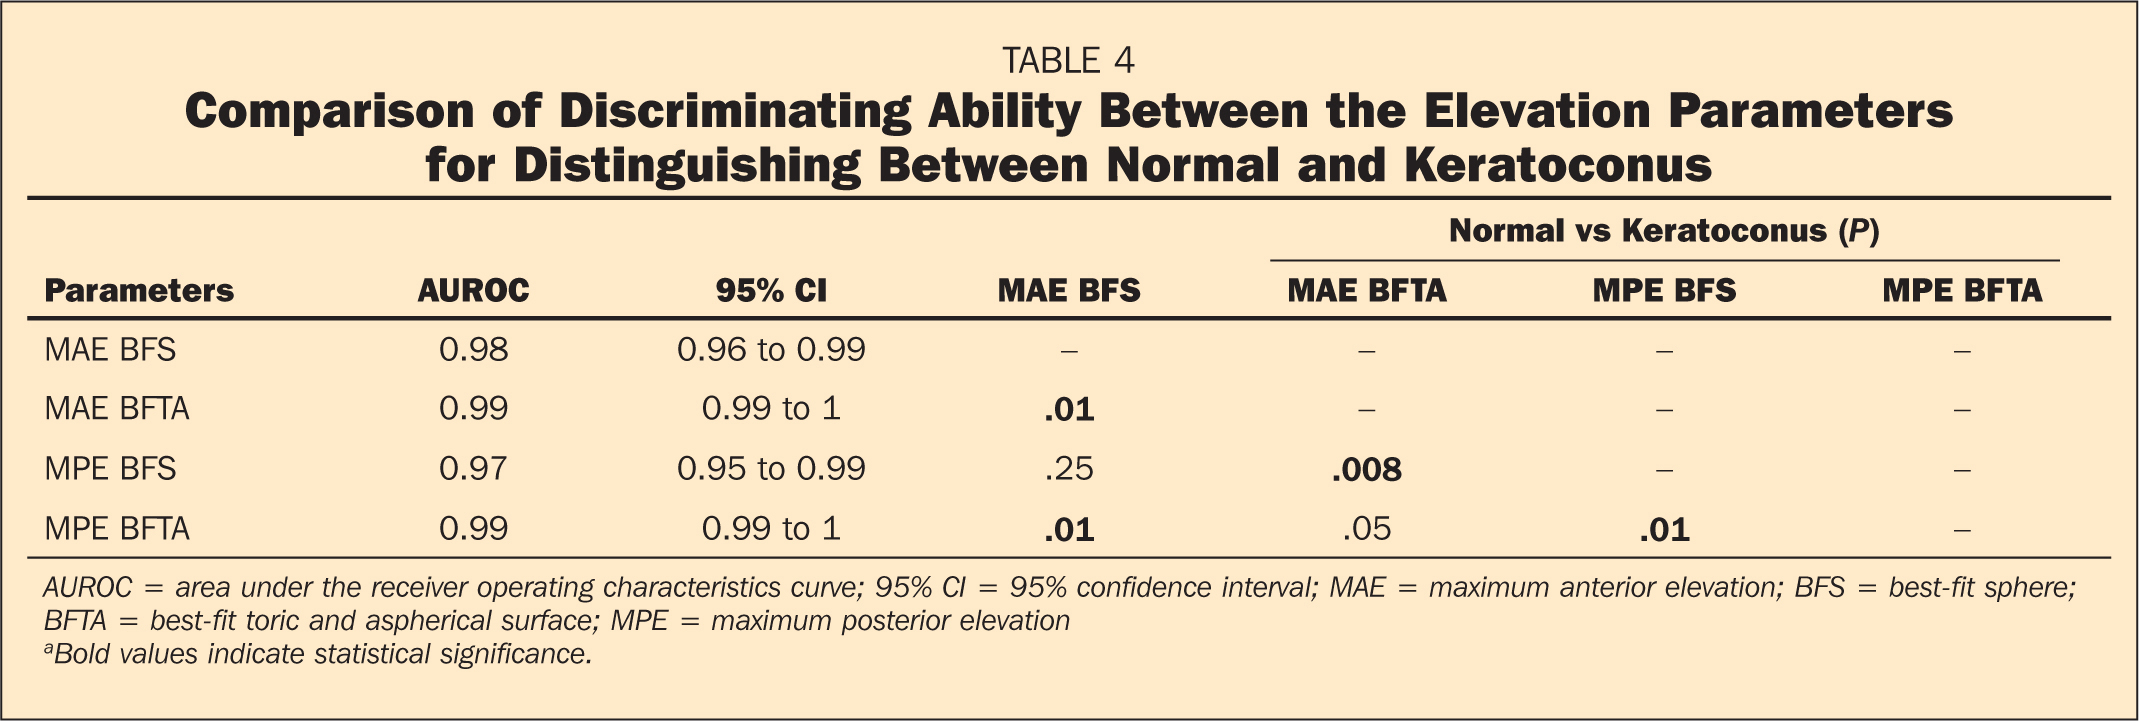 Comparison of Discriminating Ability Between the Elevation Parameters for Distinguishing Between Normal and Keratoconus